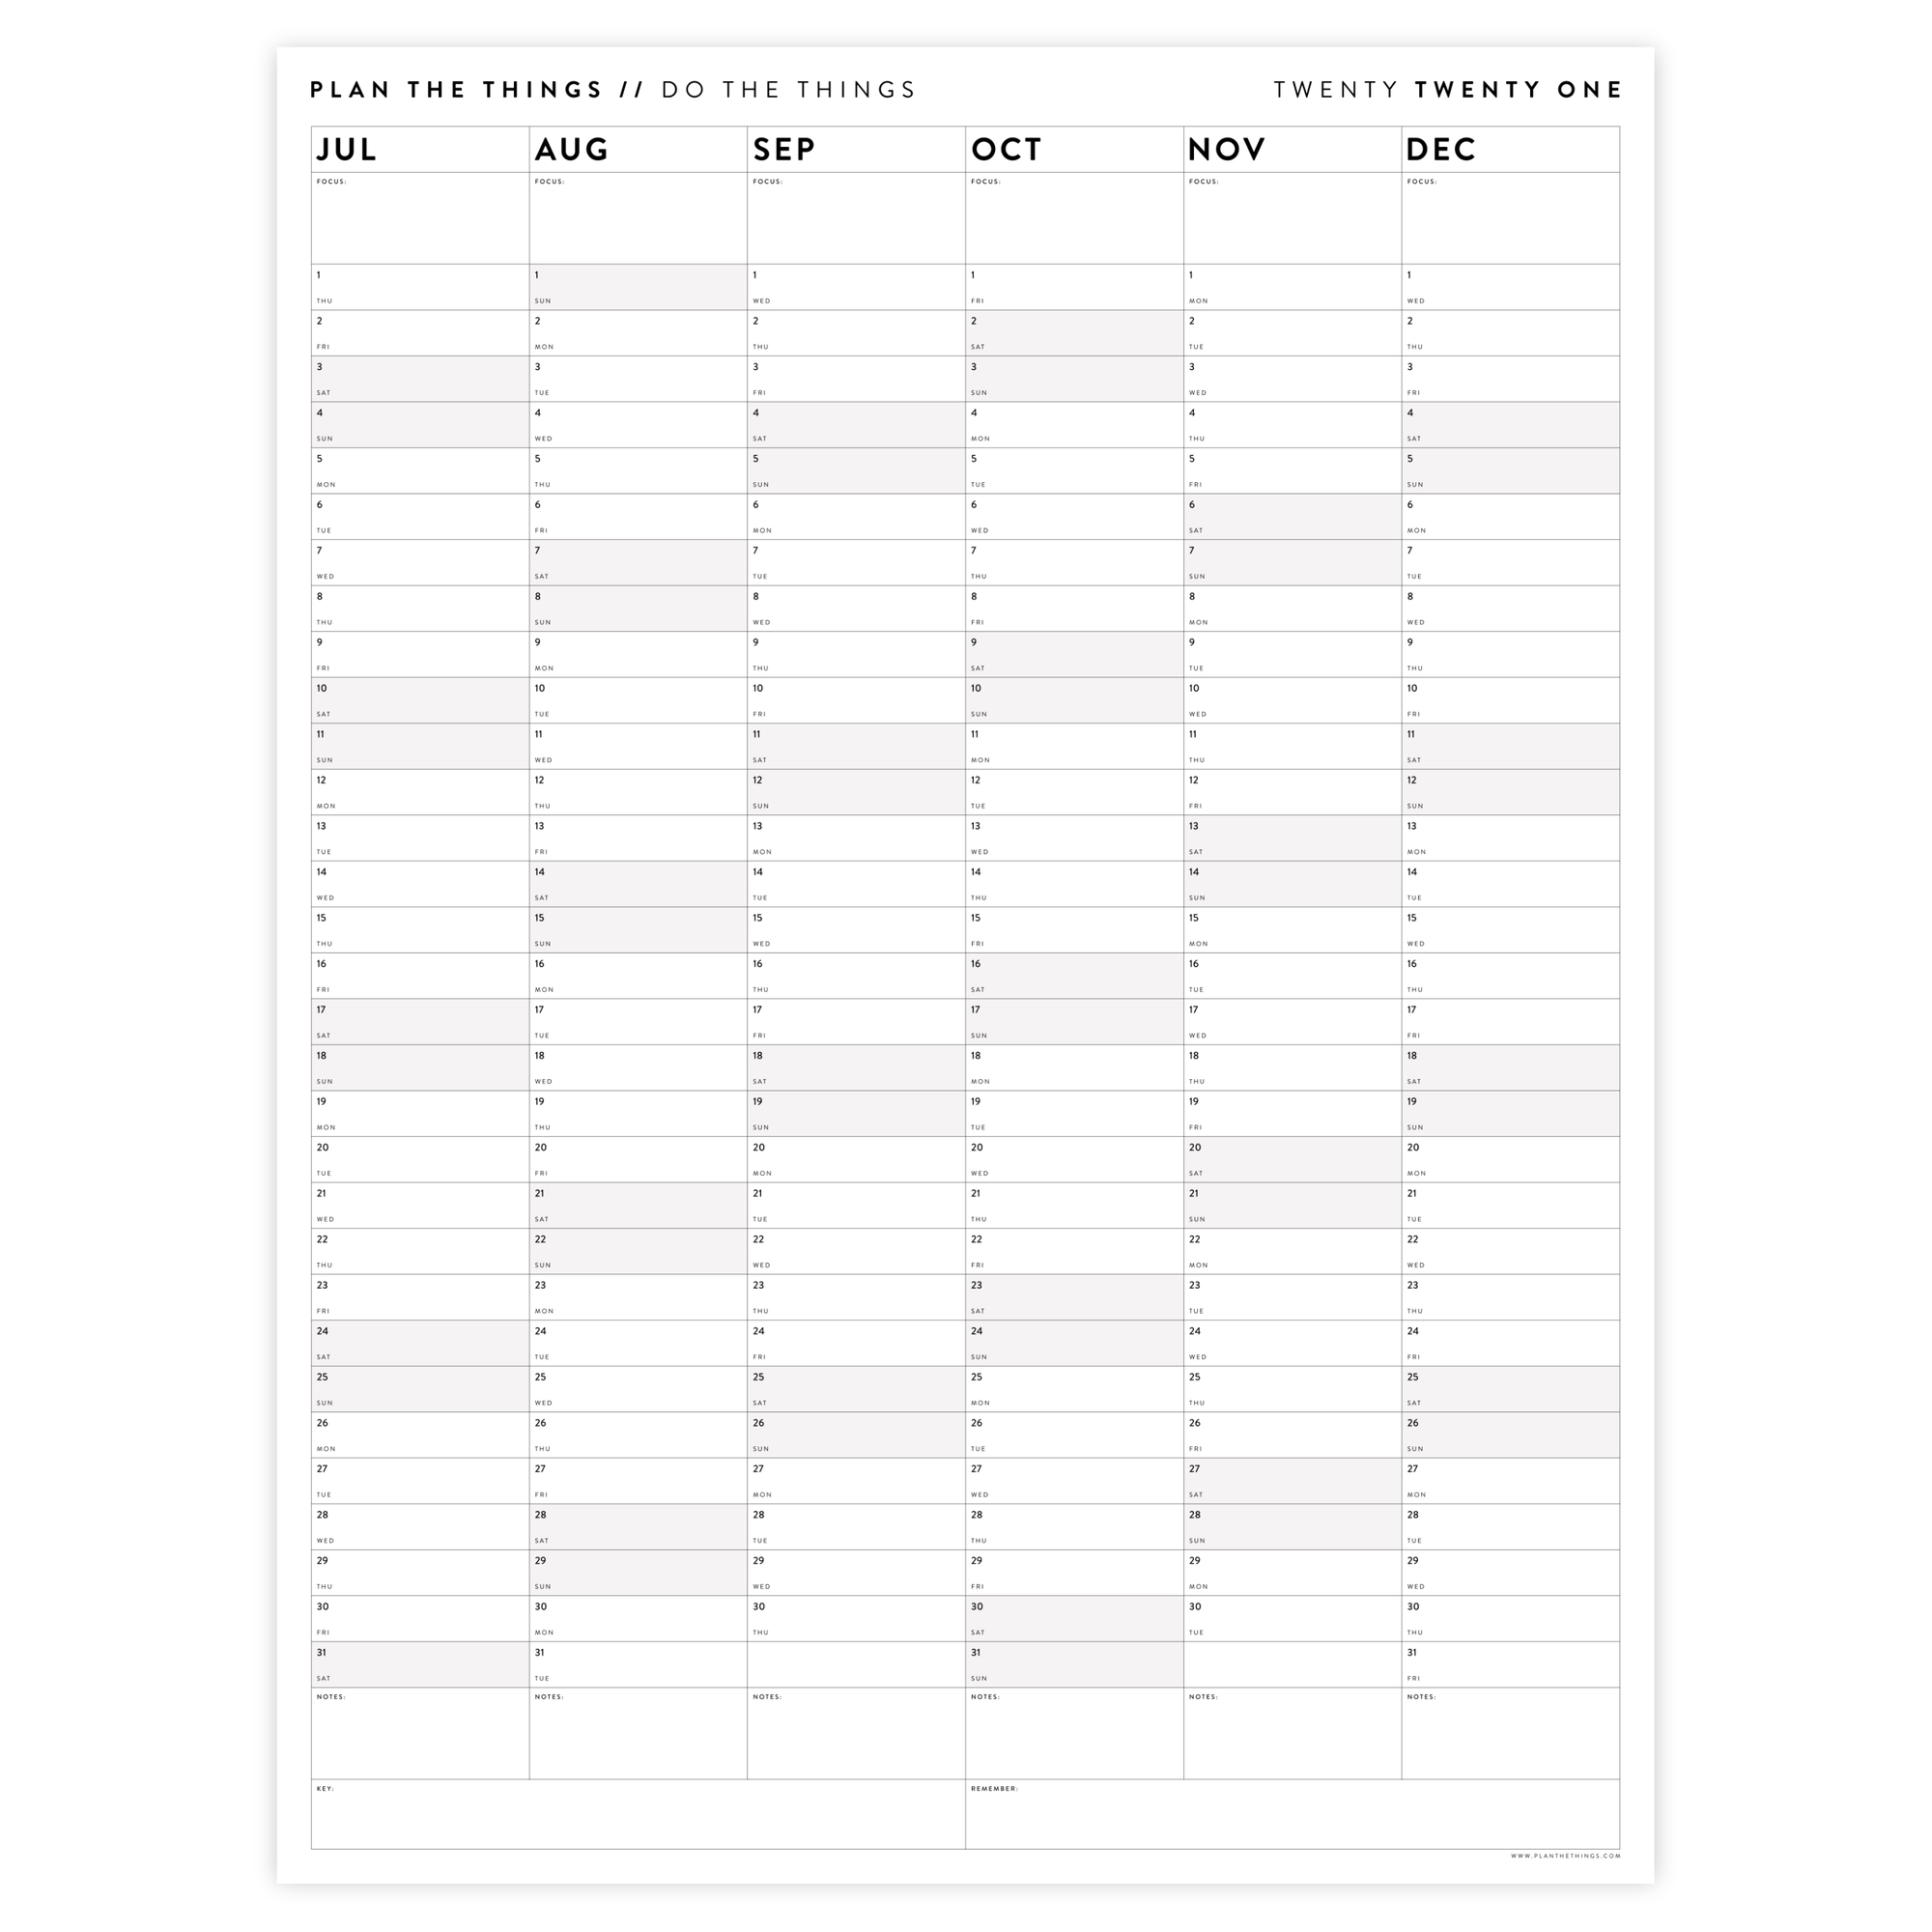 SIX MONTH 2021 WALL CALENDAR (JULY TO DECEMBER) WITH GREY WEEKENDS